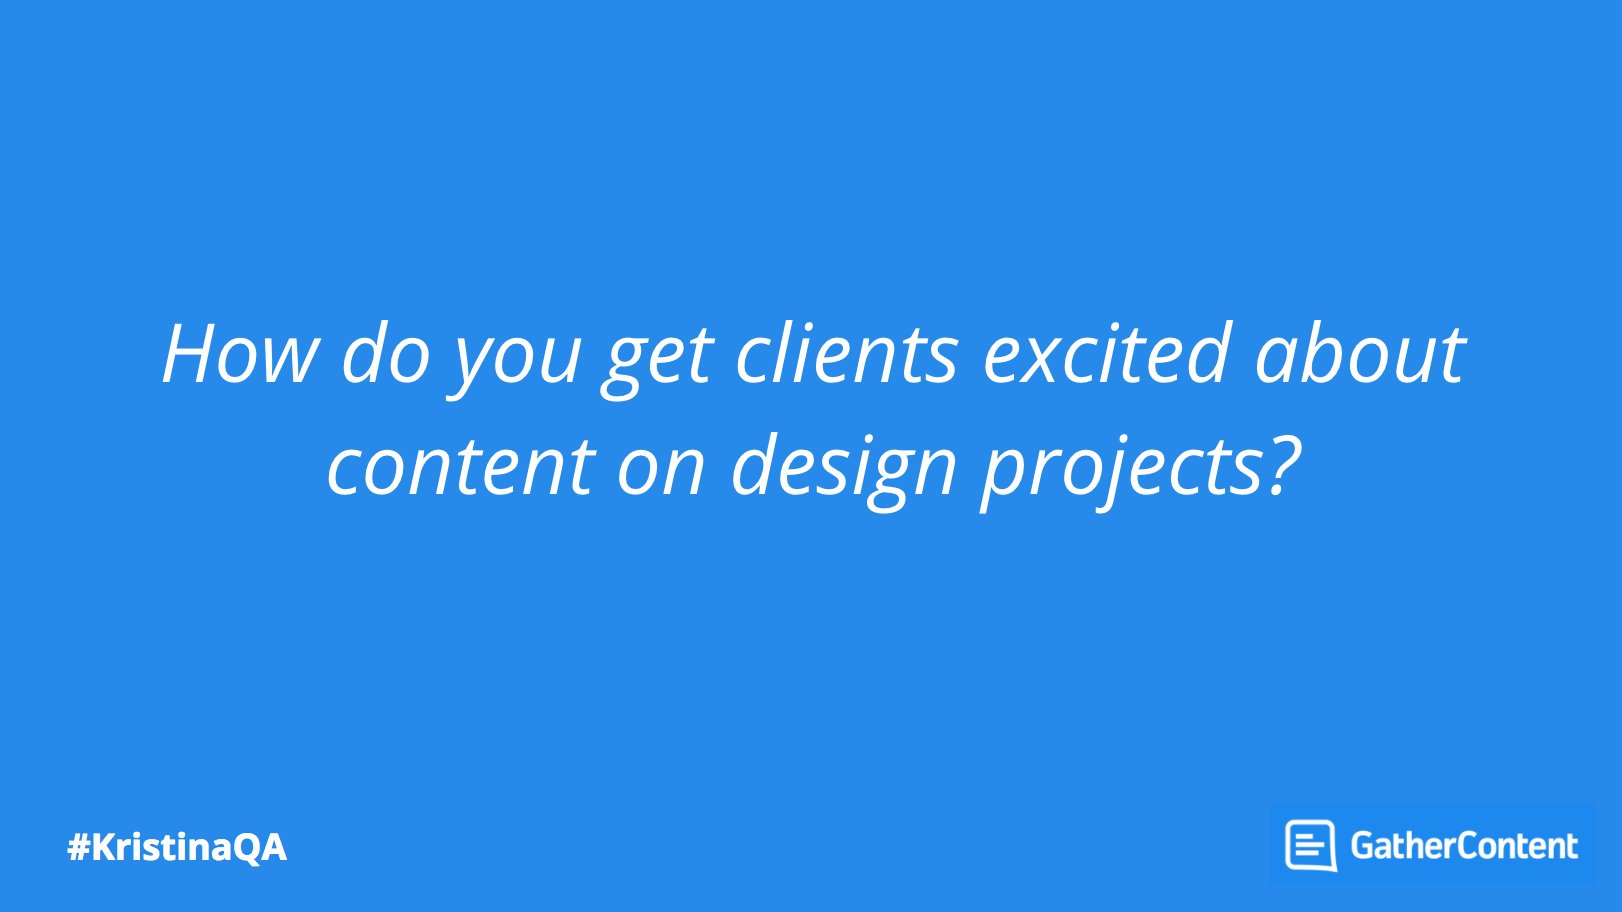 """Kristina's mantra: """"People come to your site for content not design"""" #KristinaQA https://t.co/HcRF8EXnXt"""